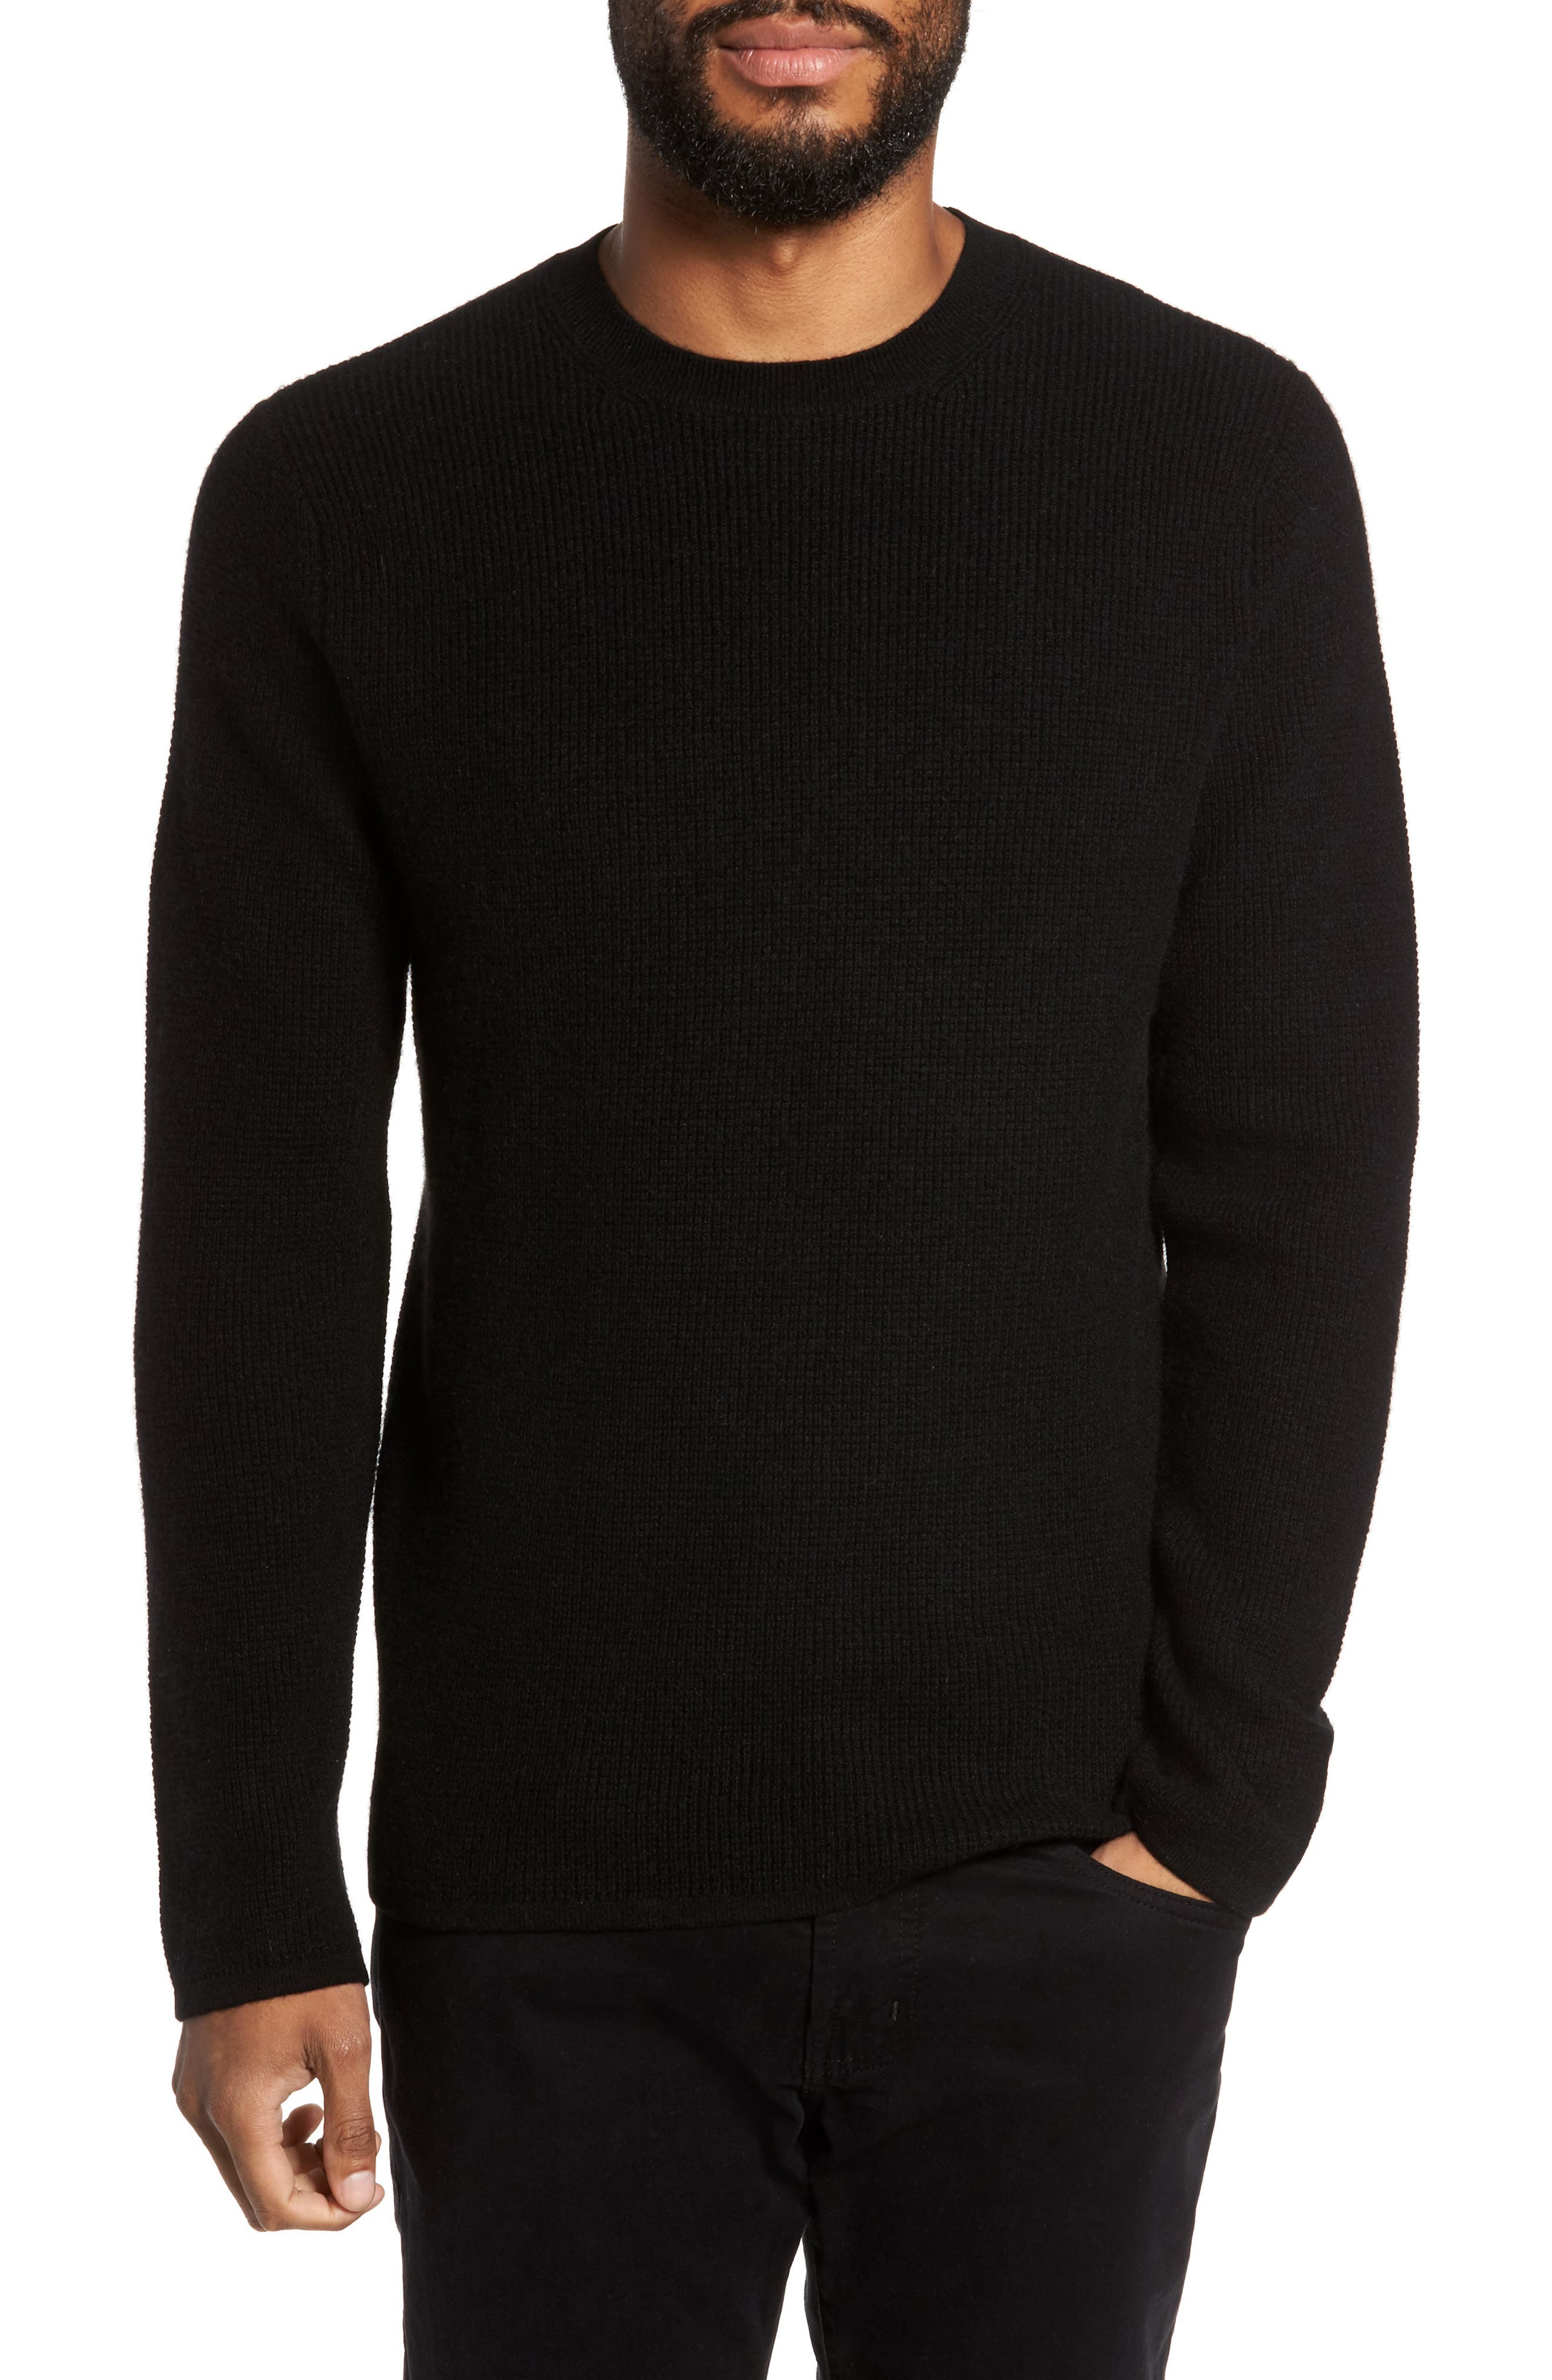 Thermal Wool & Cashmere Sweater,                             Main thumbnail 1, color,                             Black